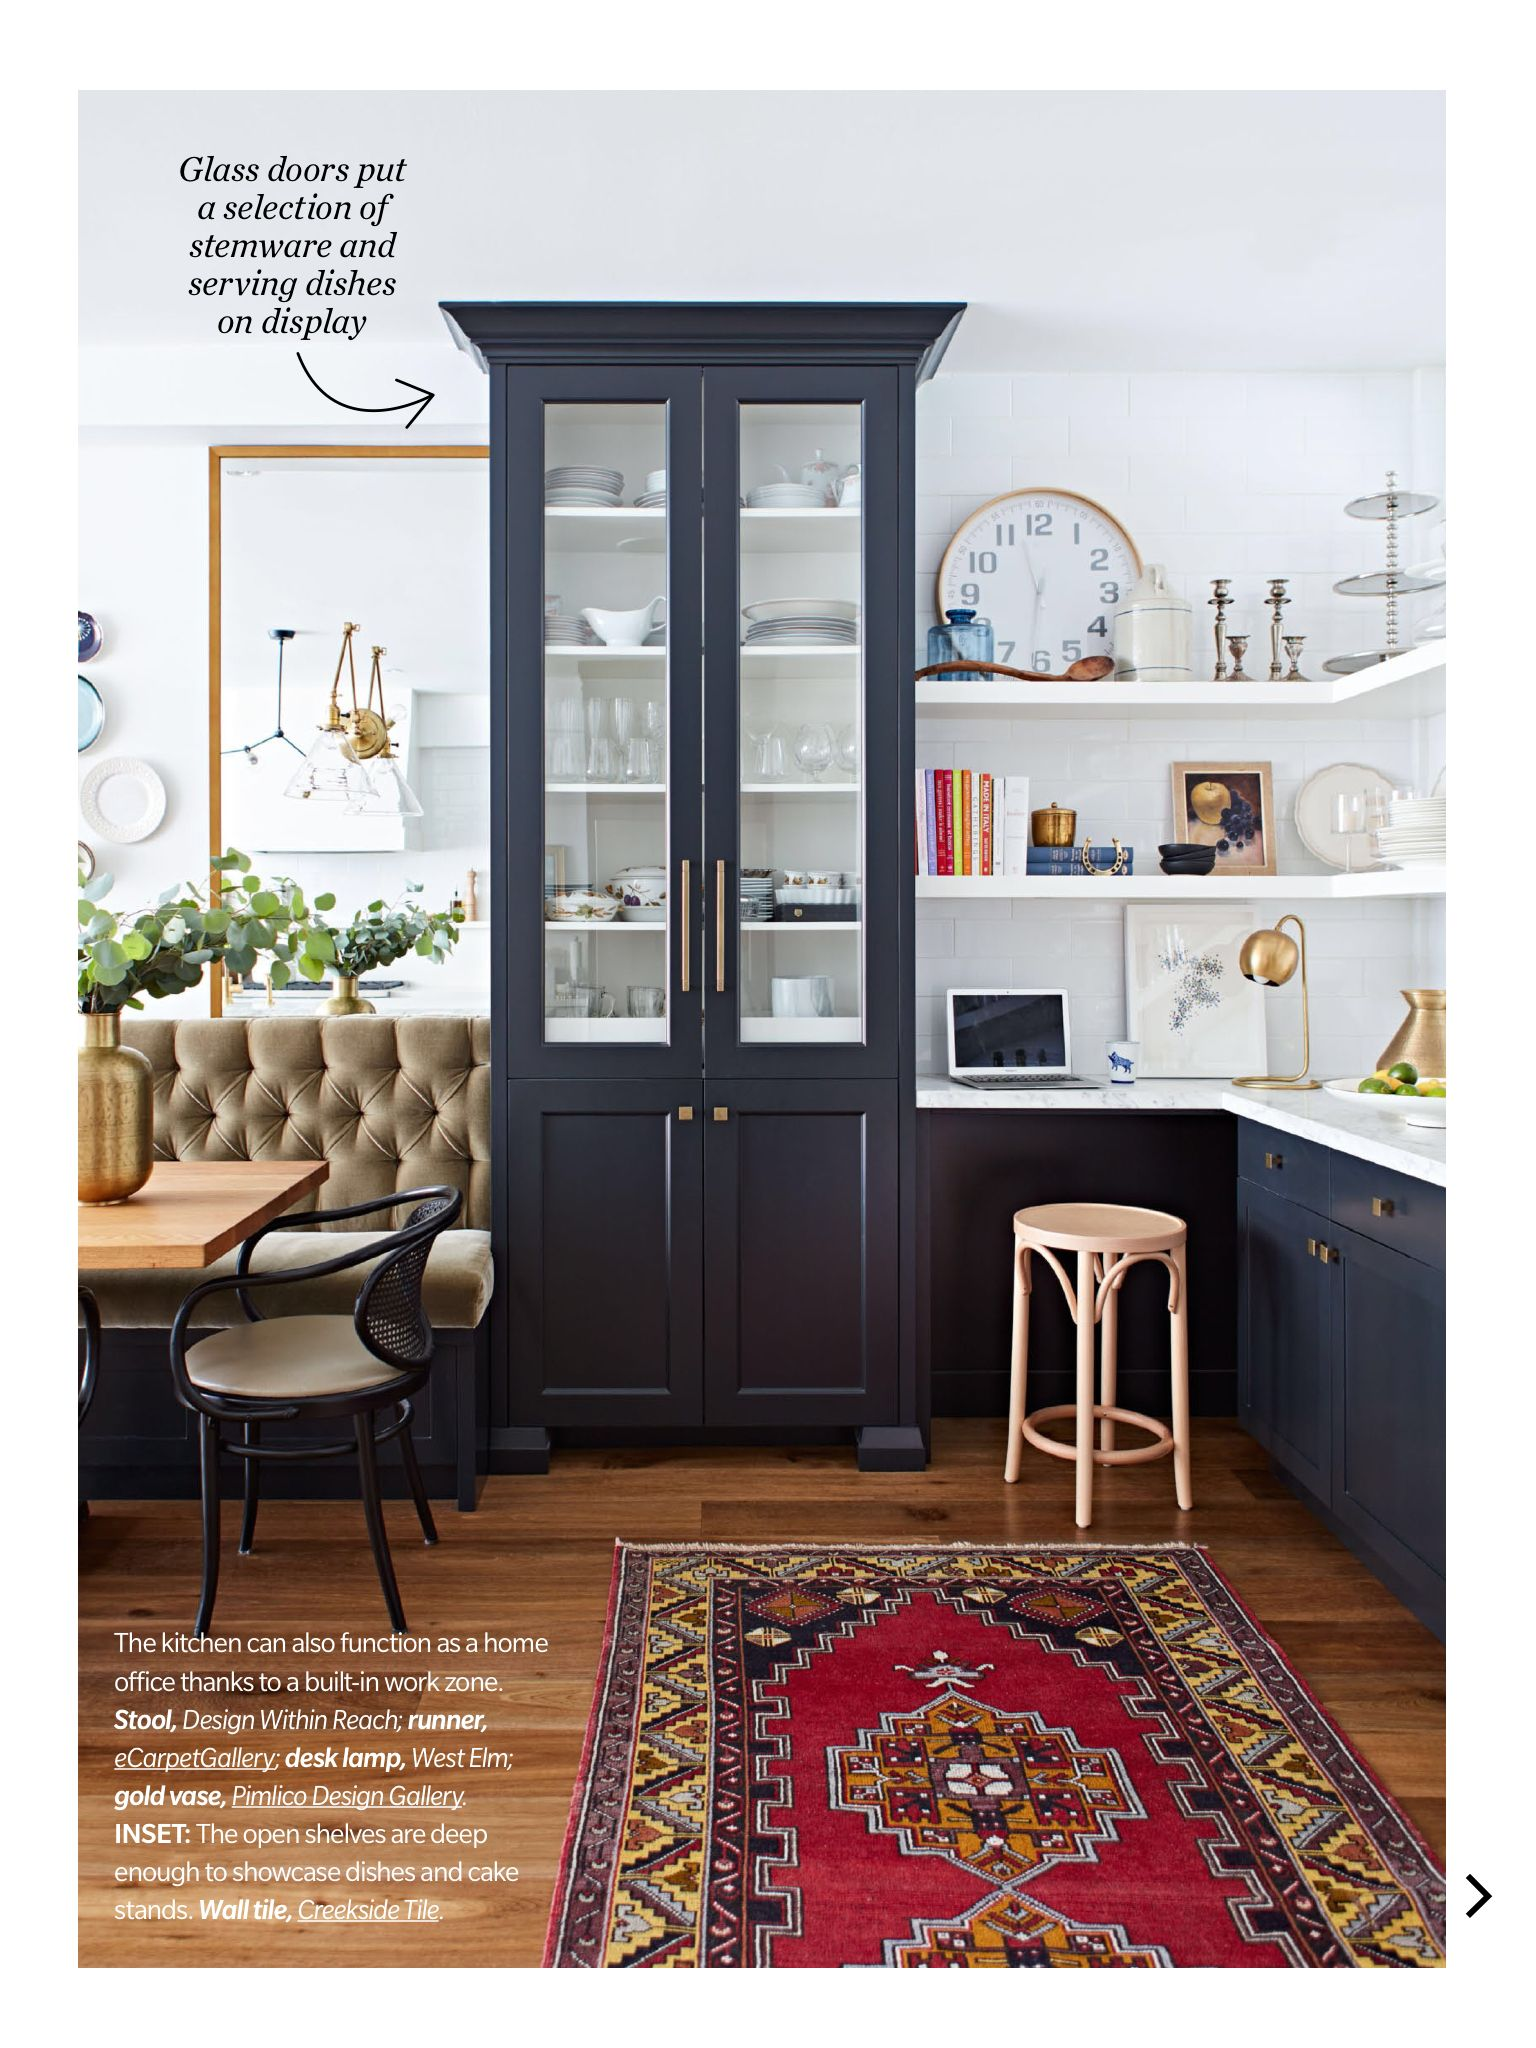 kitchen magazine vanity with sink special from house home october 2017 read it on the texture app unlimited access to 200 top magazines